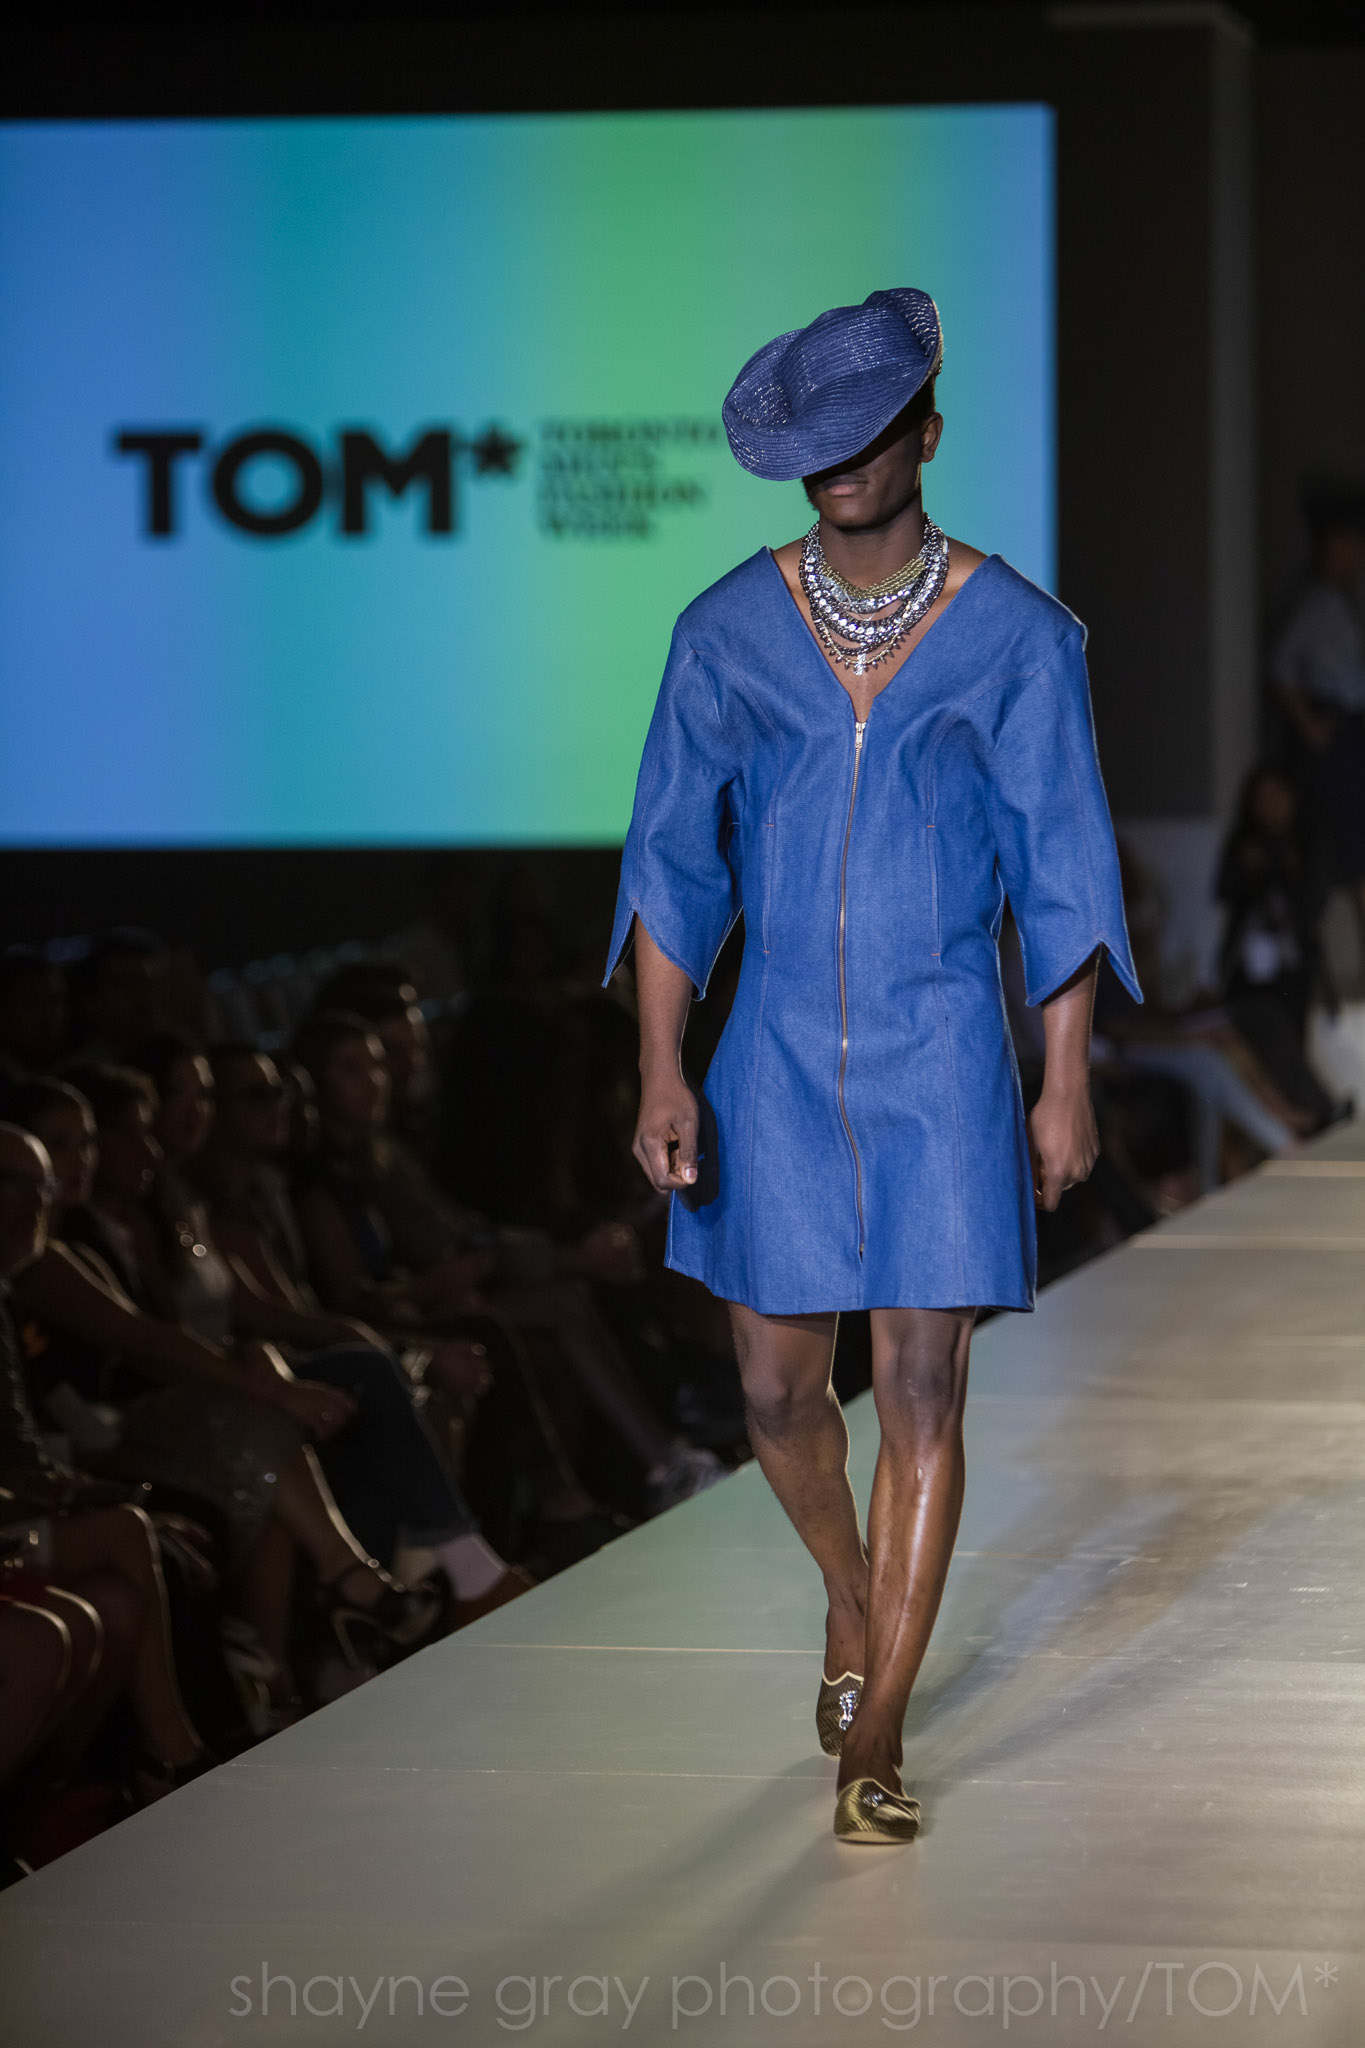 Shayne-Gray-Toronto-men's-fashion_week-TOM-l'uomo-strano-8626.jpg